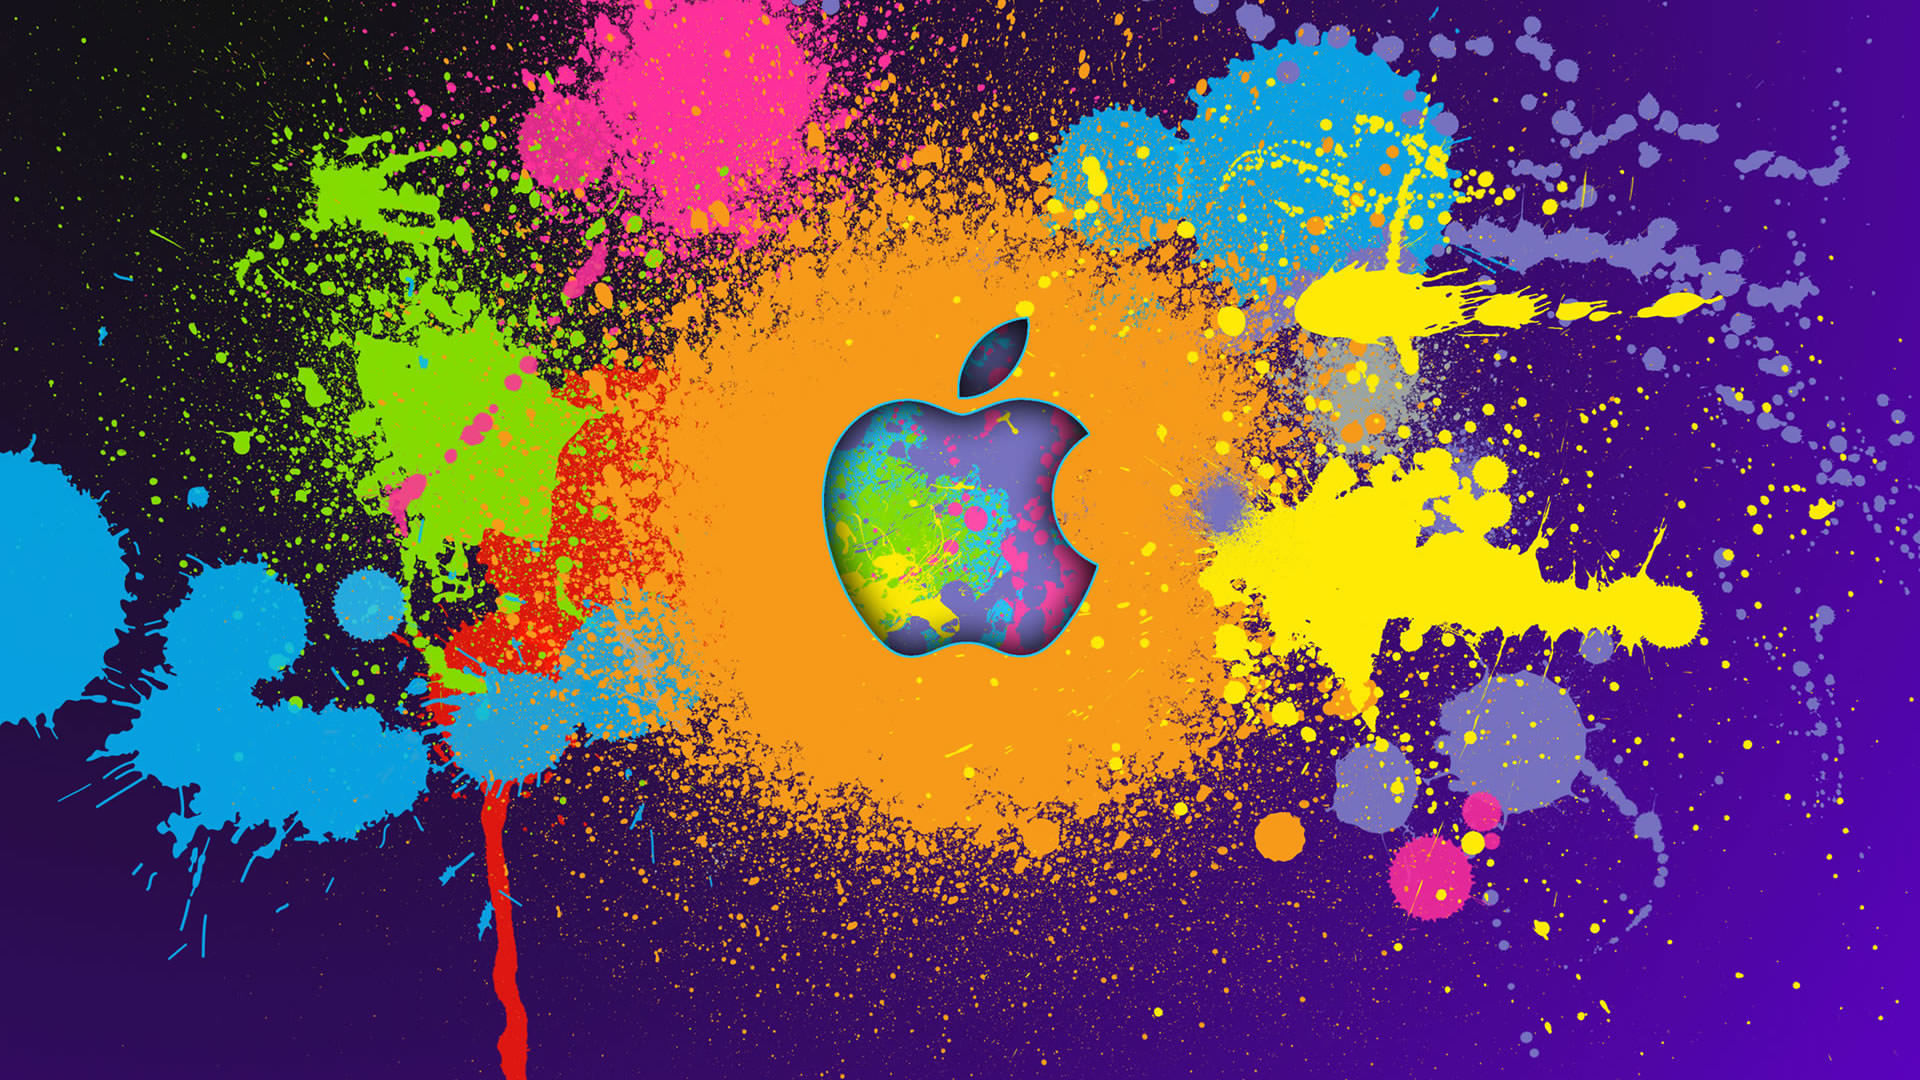 Apple Desktop Wallpaper 1920x1080